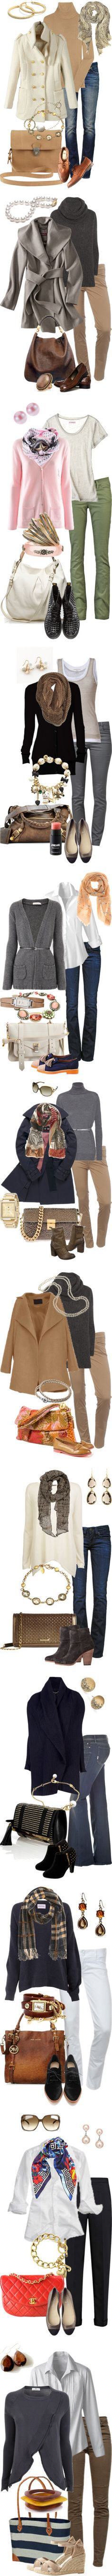 """Classic Chic"" by simple-wardrobe ❤ liked on Polyvore"